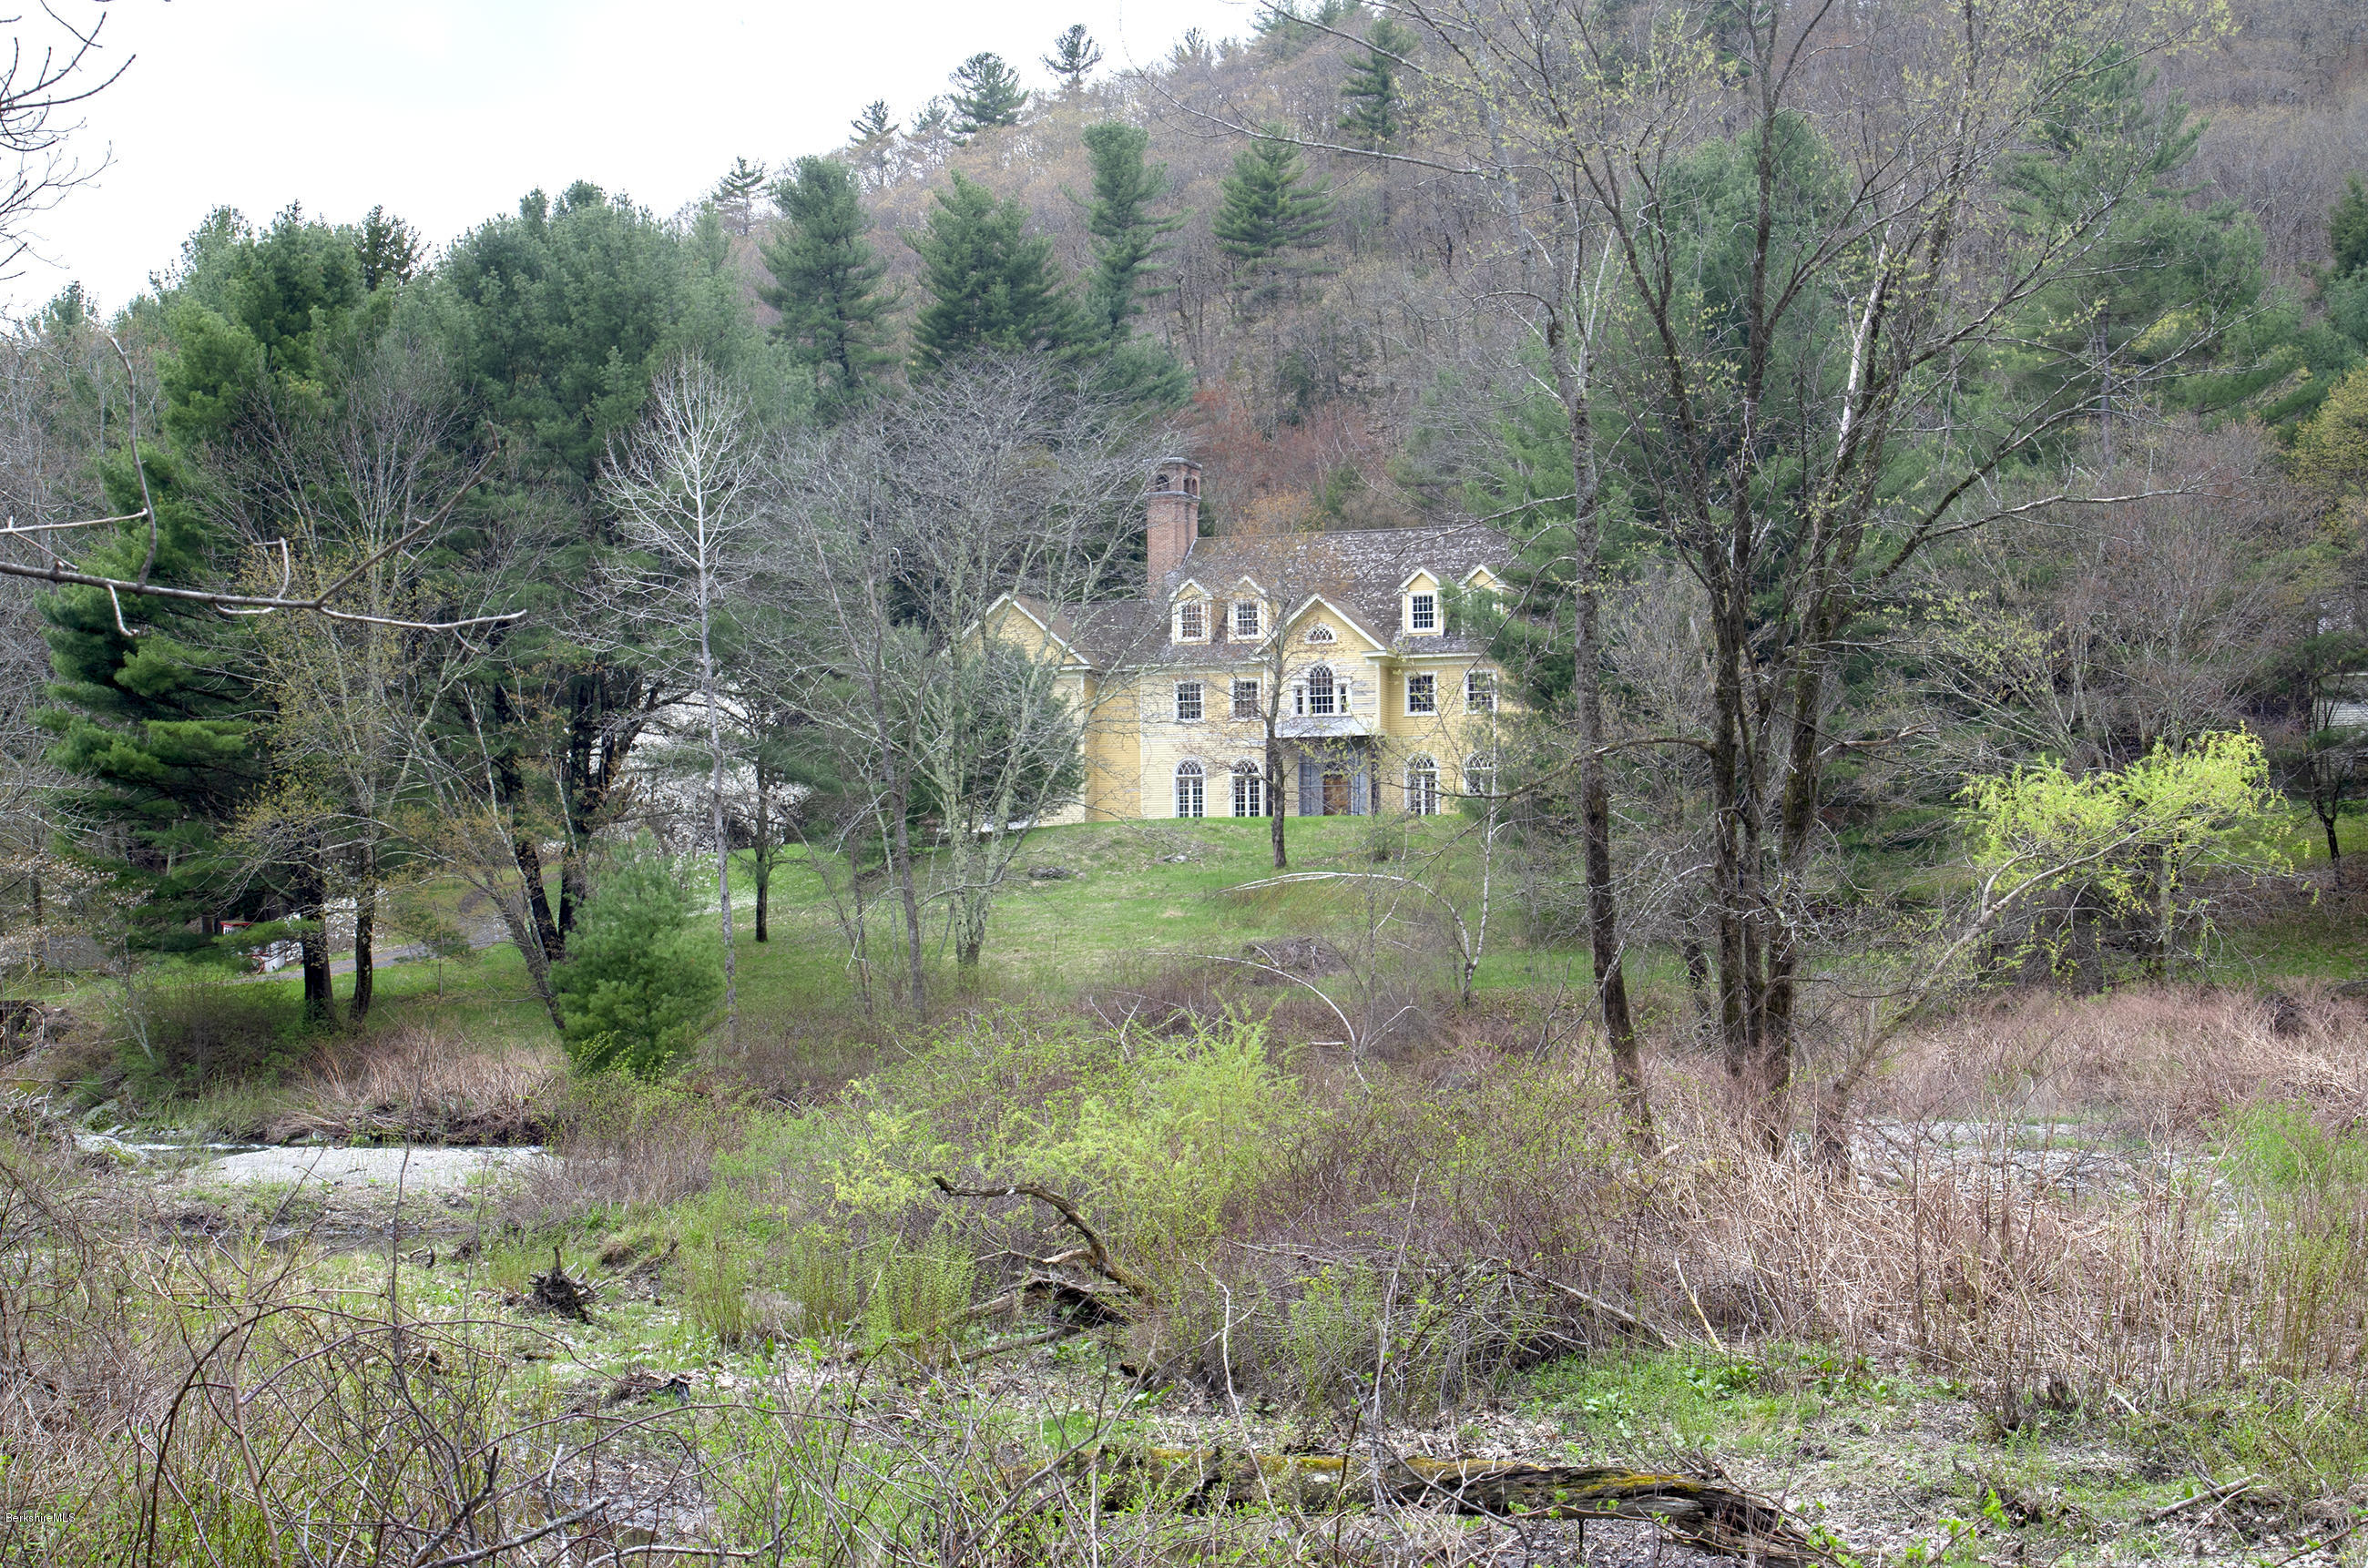 245 County Route 71 -- Hillsdale NY 12529